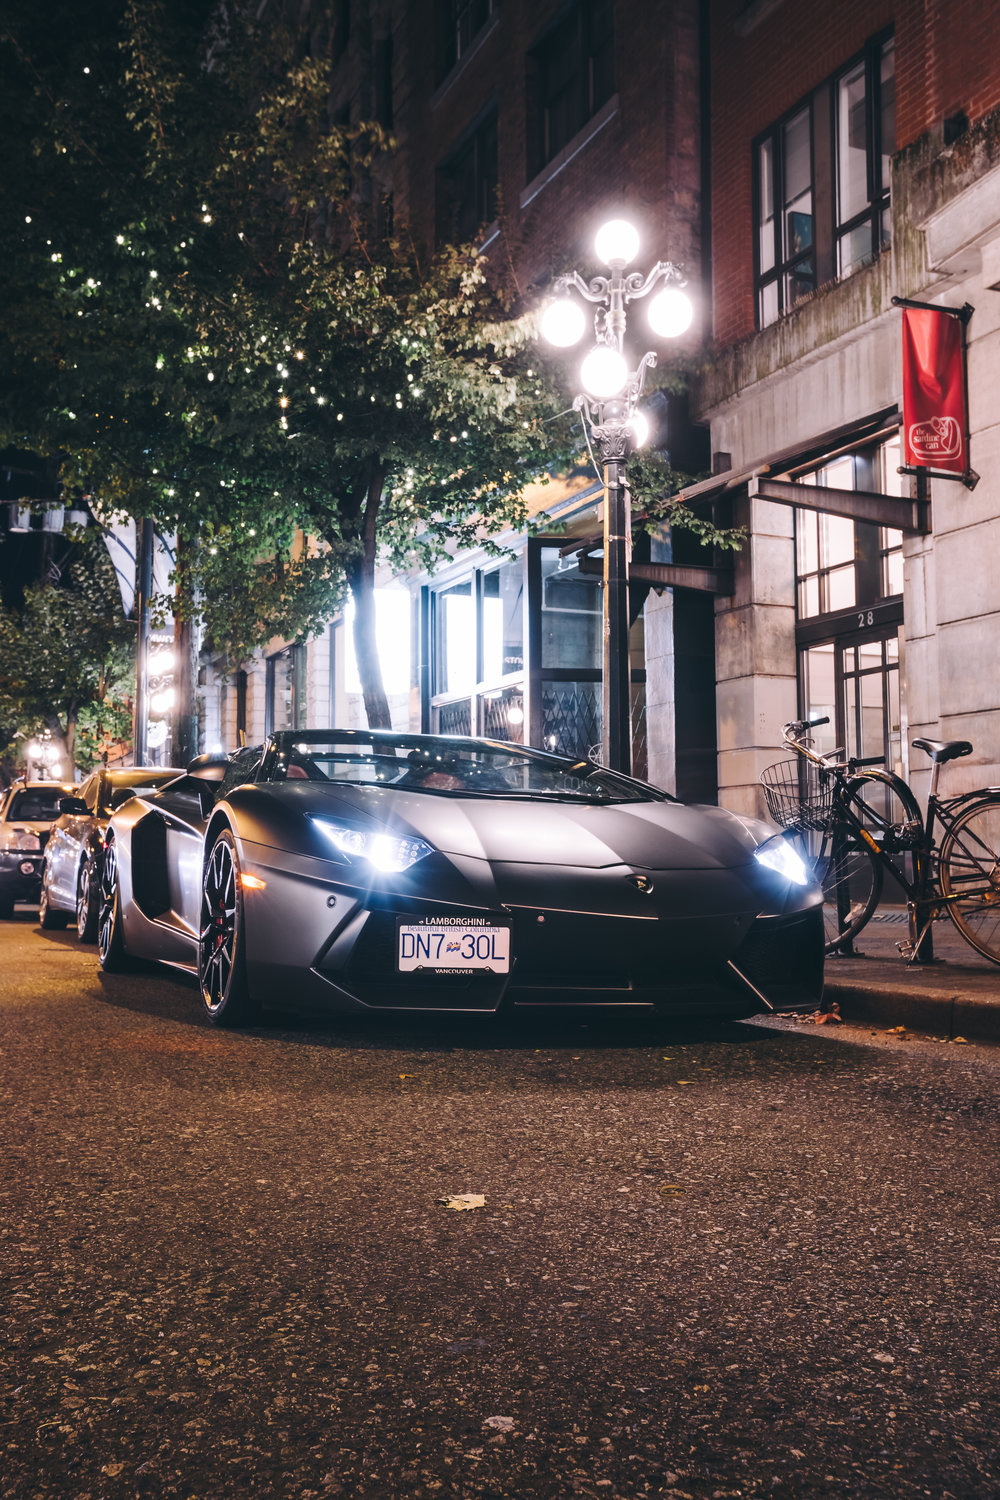 Sea to Sky Exotic Gallardo Aventador - edited (5 of 13).jpg